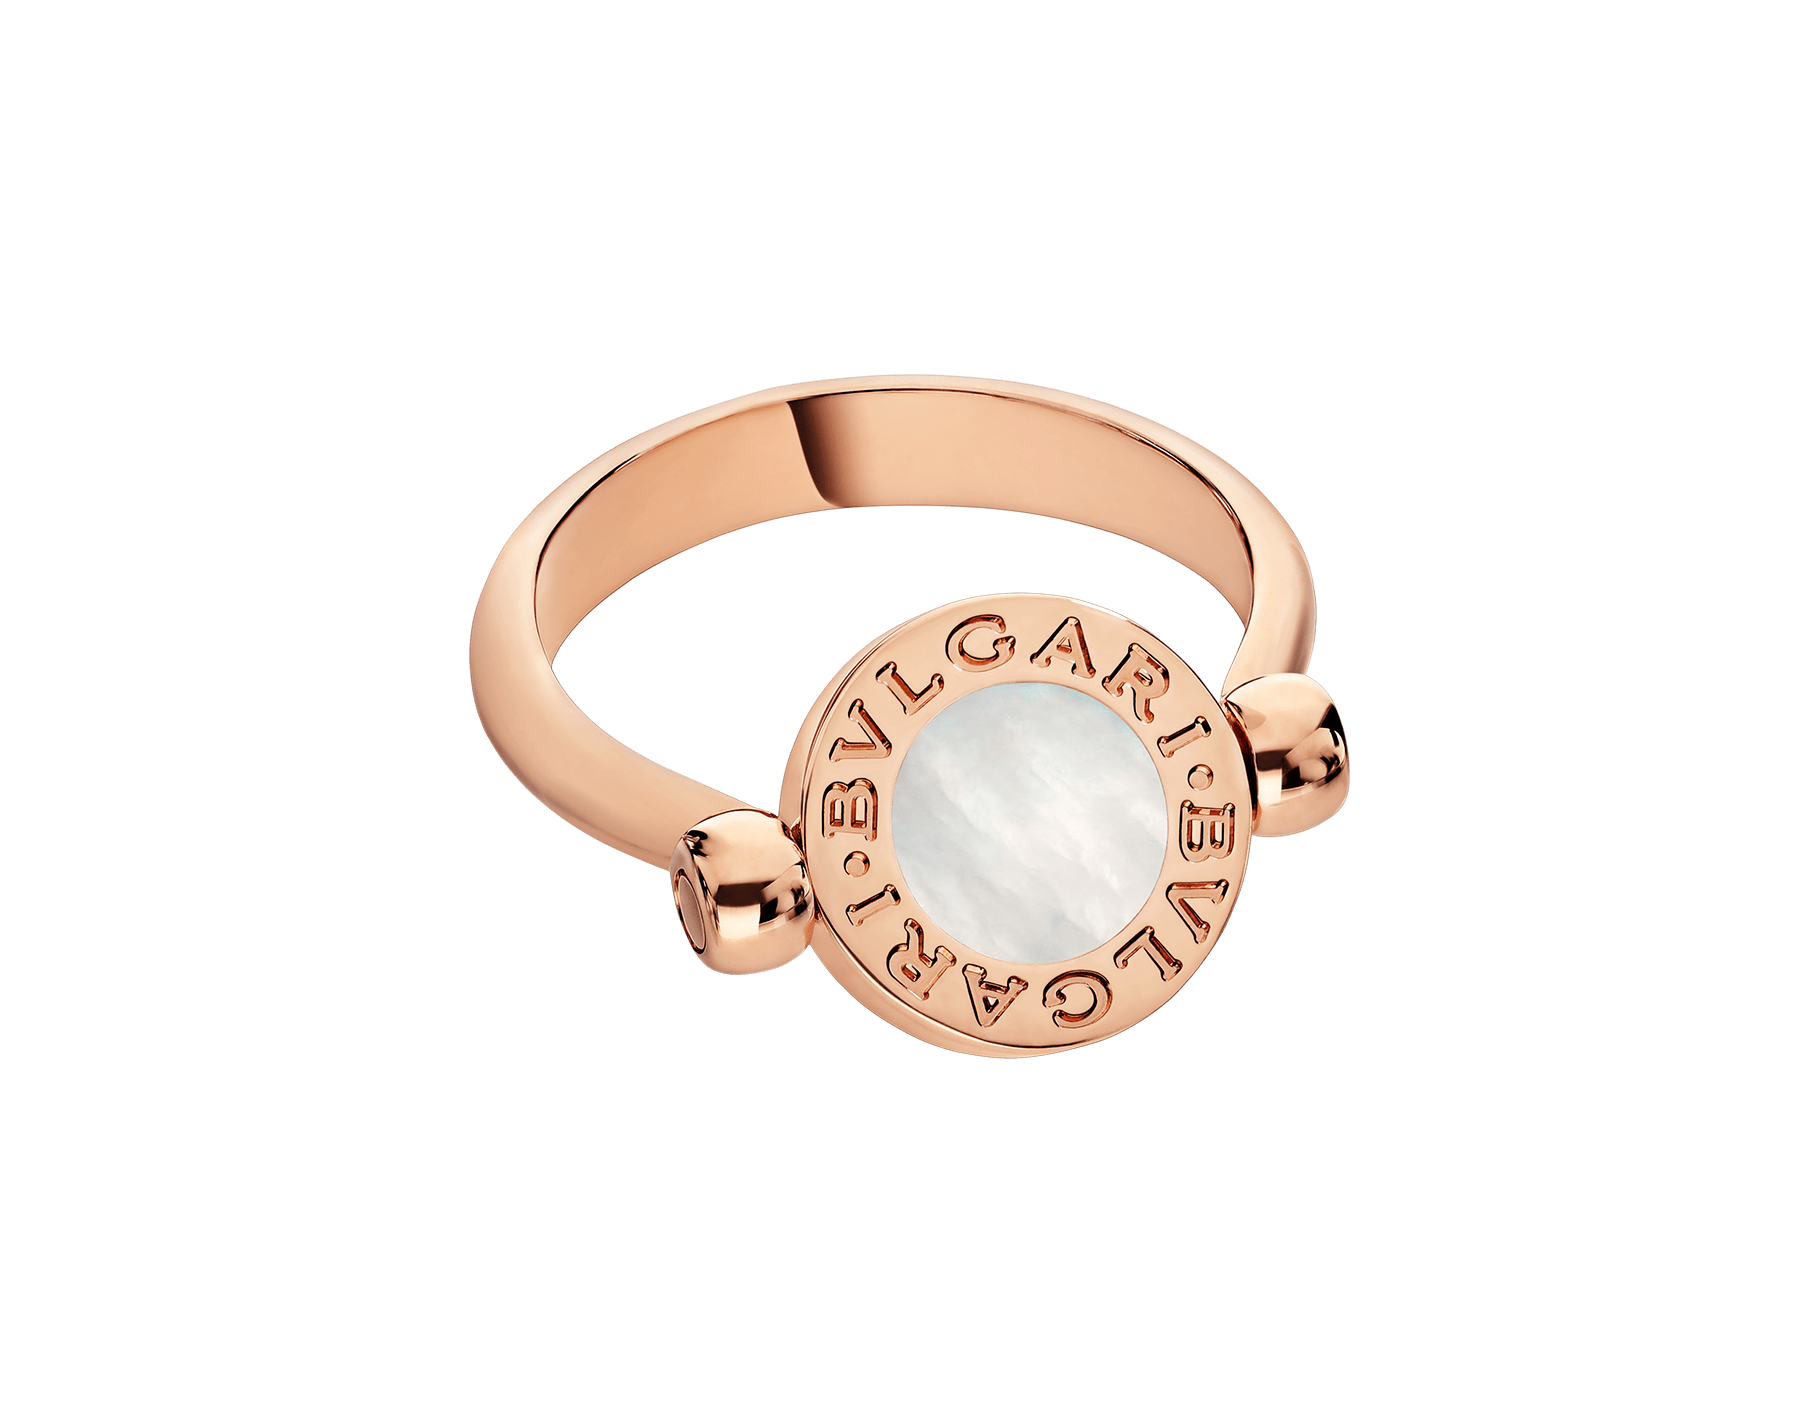 BVLGARI BVLGARI 18 kt rose gold flip ring set with mother-of-pearl and onyx AN856192 image 4